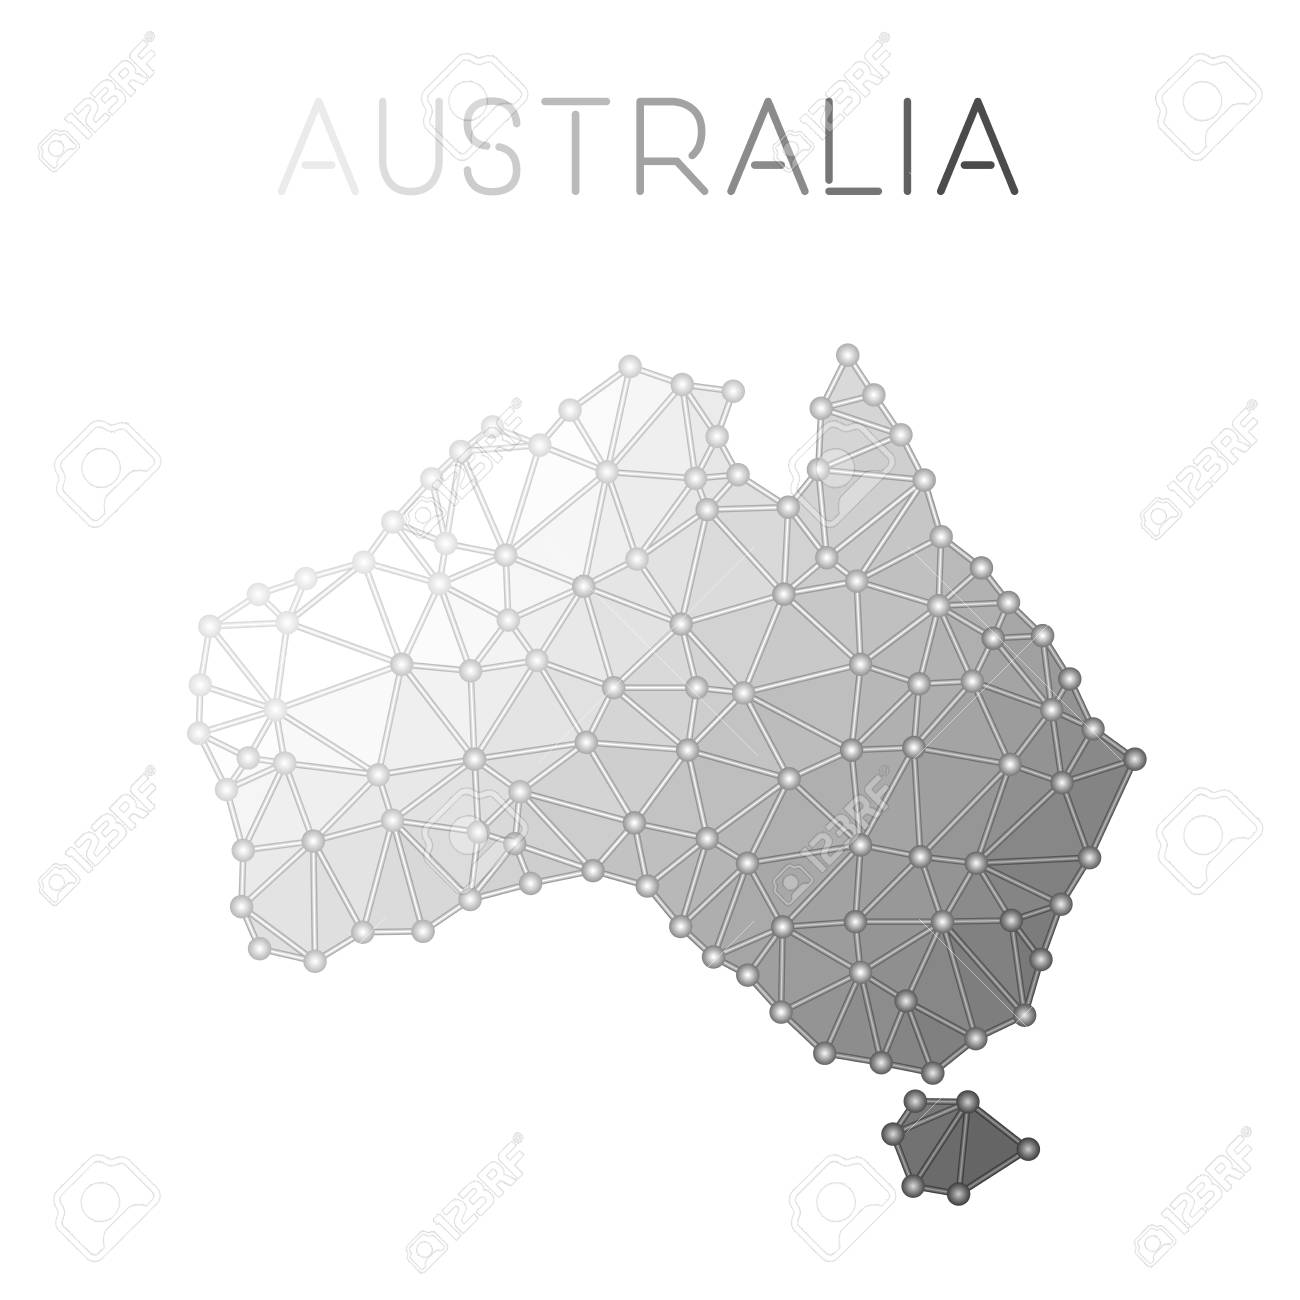 Australia Country Map.Australia Polygonal Vector Map Molecular Structure Country Map